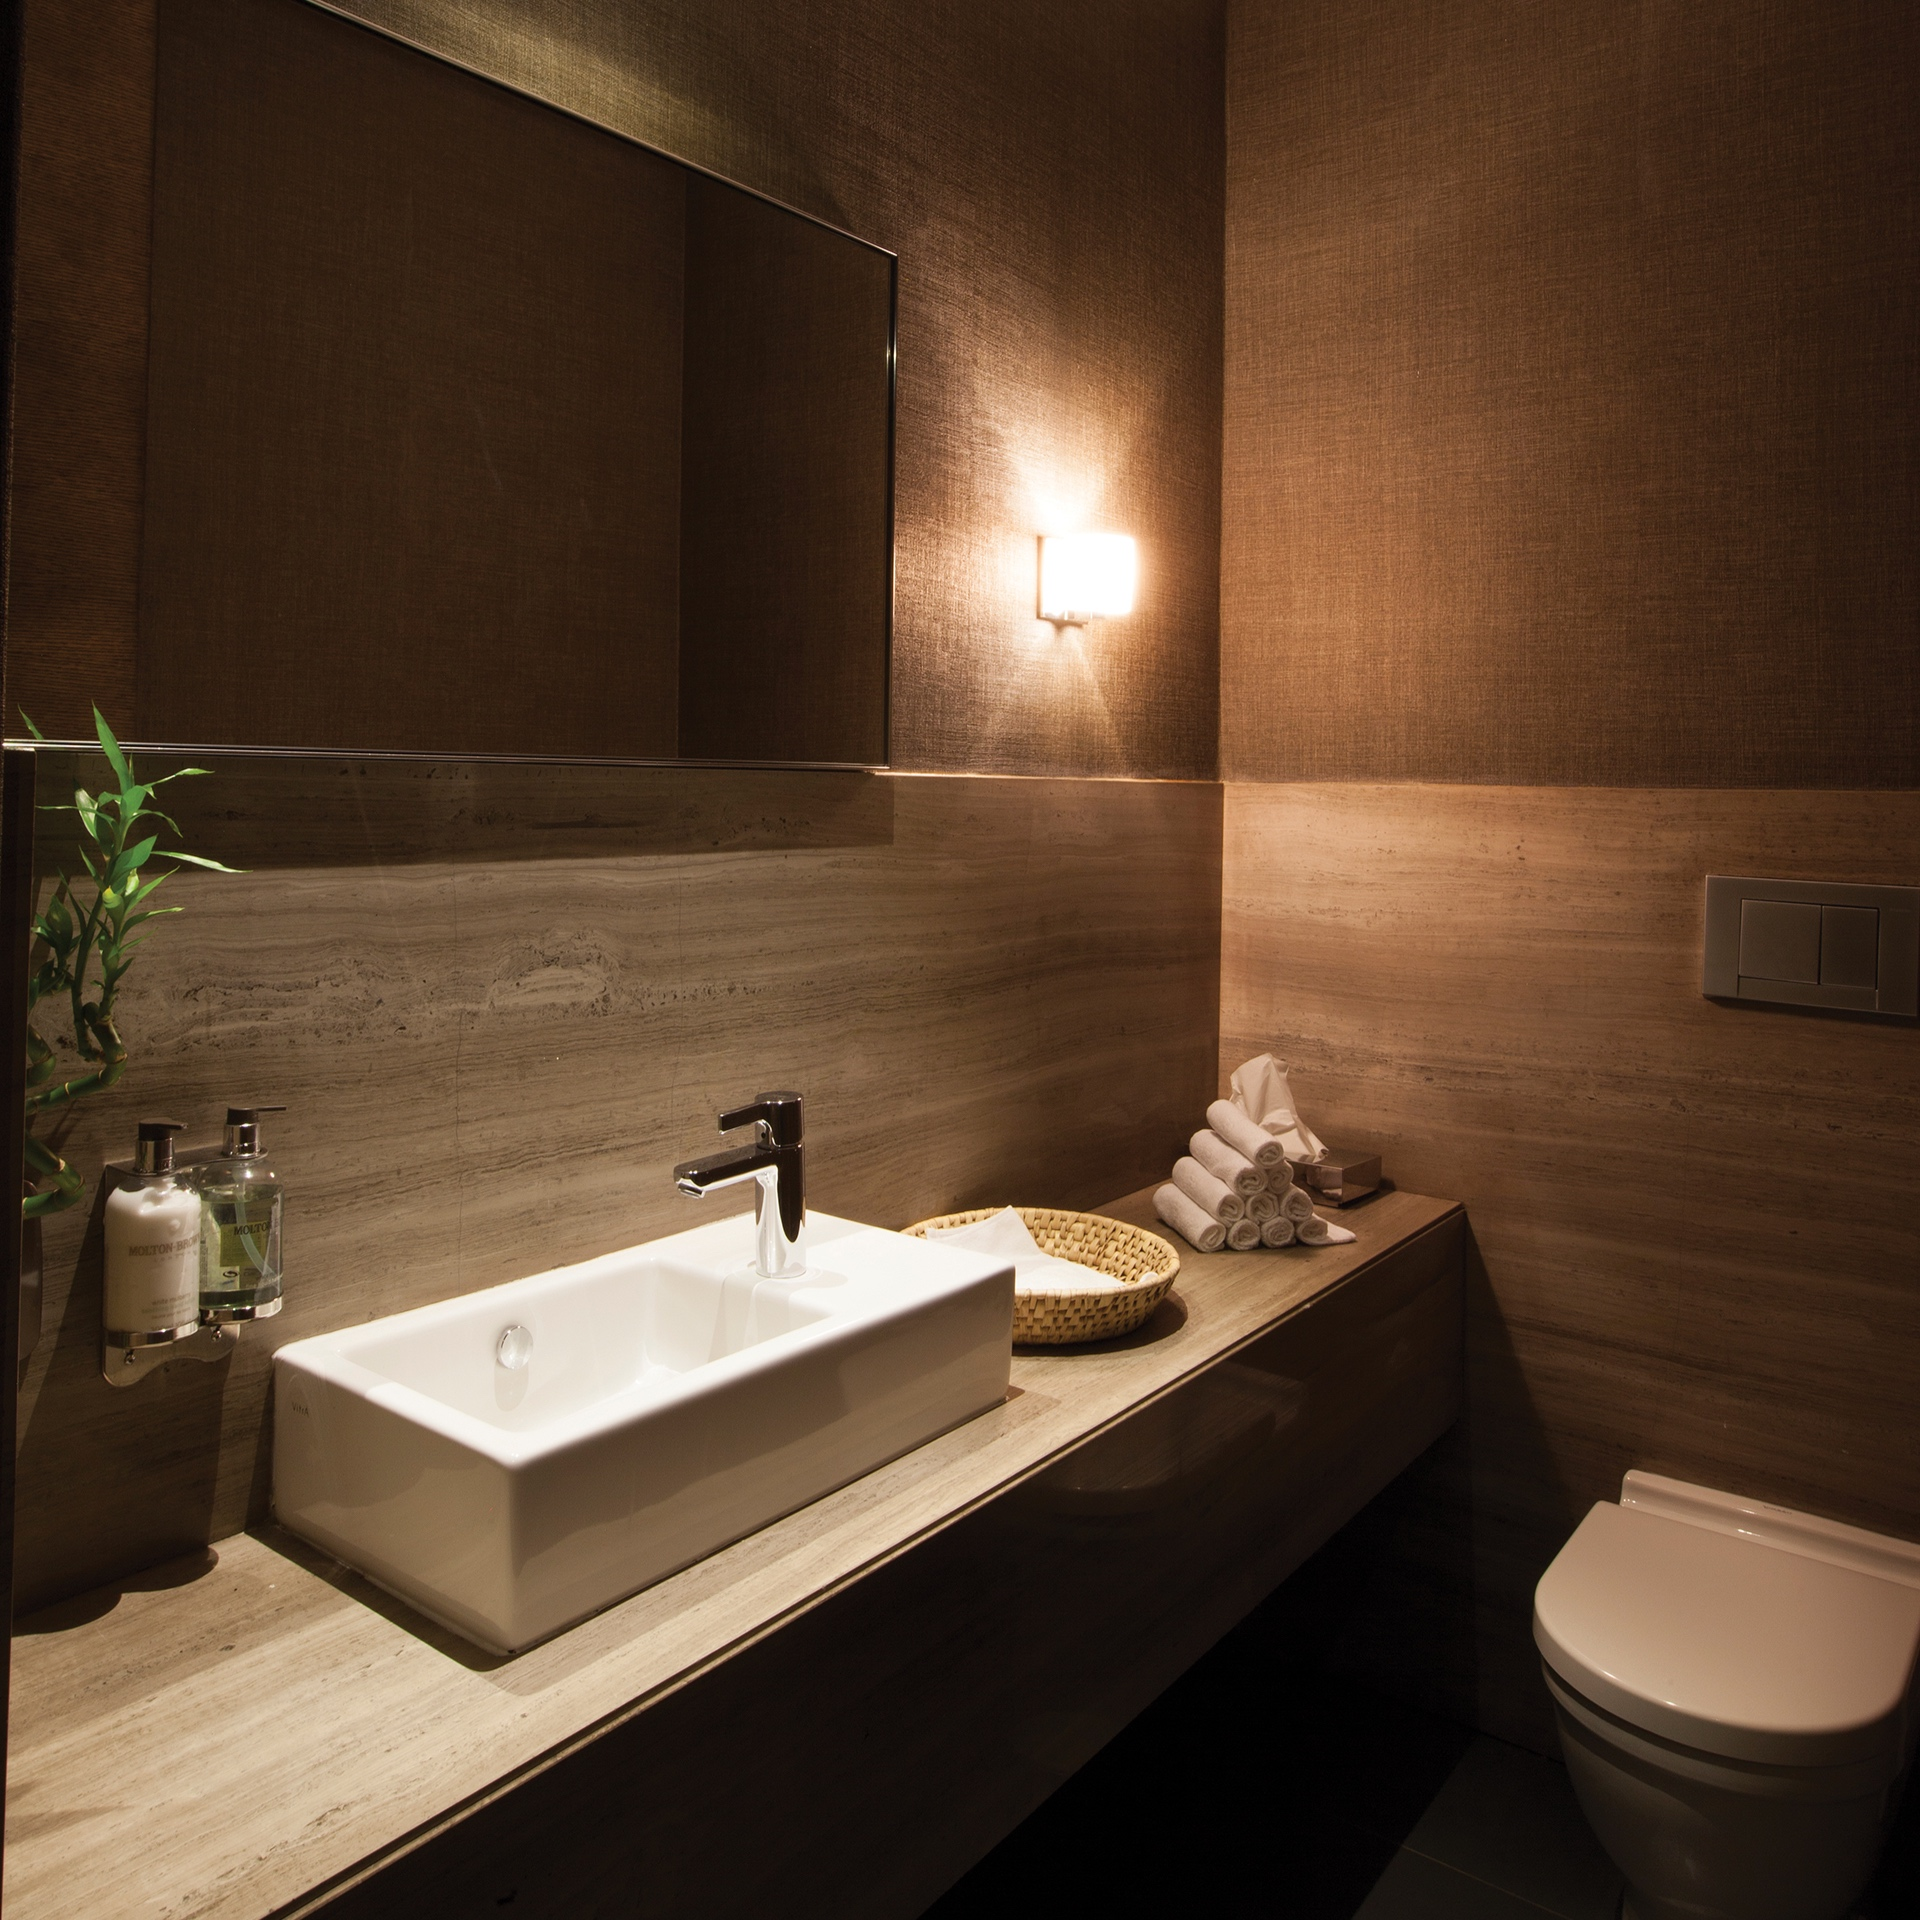 Luxurious washrooms - Refresh in our private unisex washroom facilities housing a full marble vanity area, spa-like showers, indulgently soft cotton hand towels and luxurious soaps and creams. Sleek, wall-mounted storage compartments allow for safeguarding of valuables during your stay.